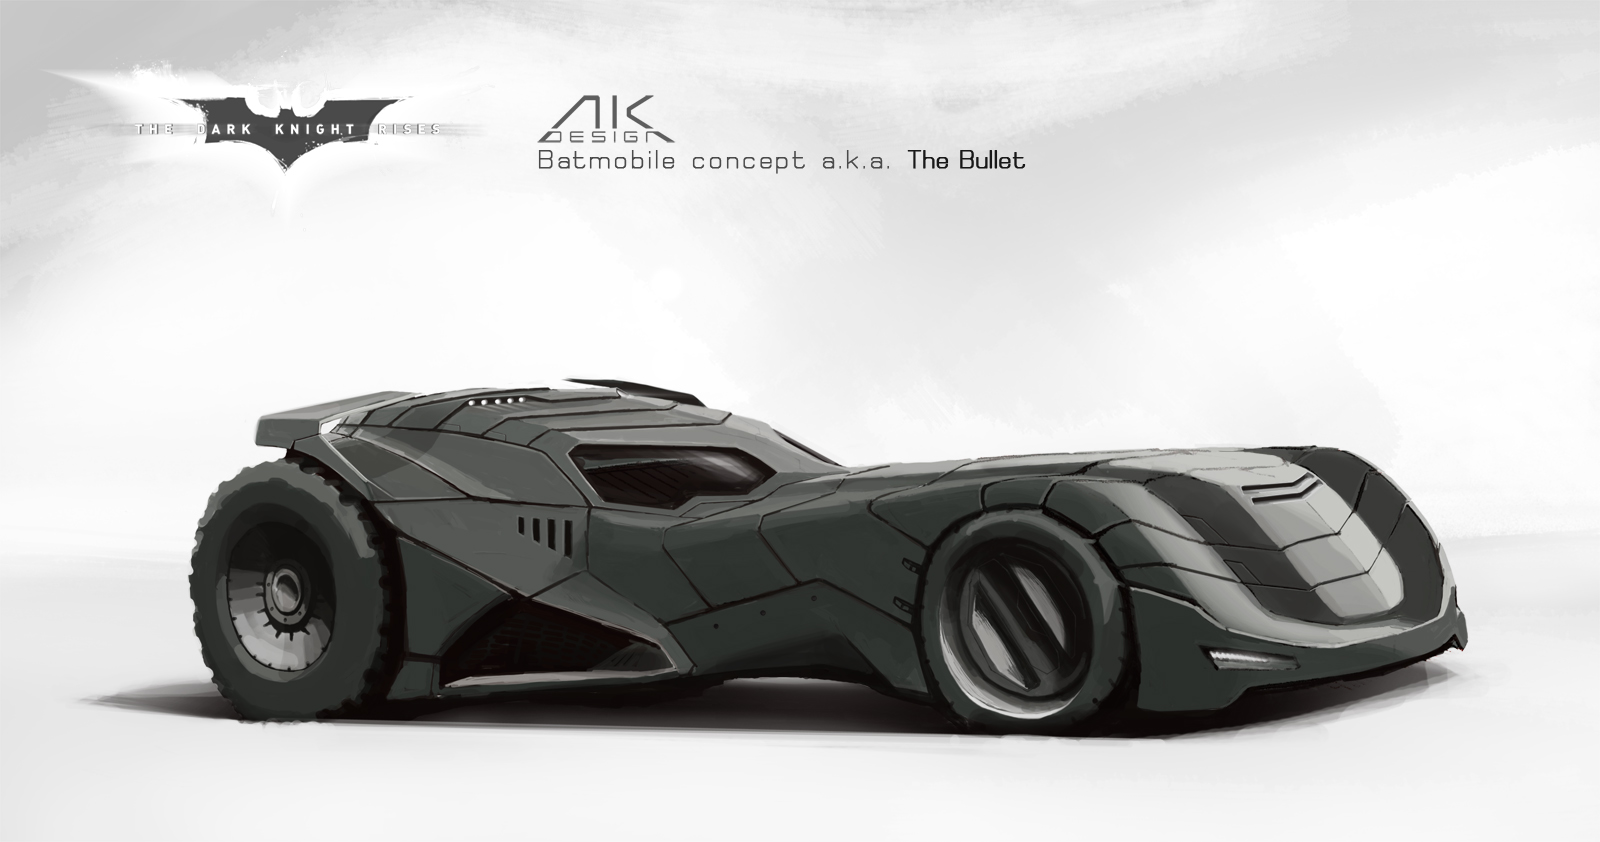 batmobile_concept_by_annaeus-d3kir4k